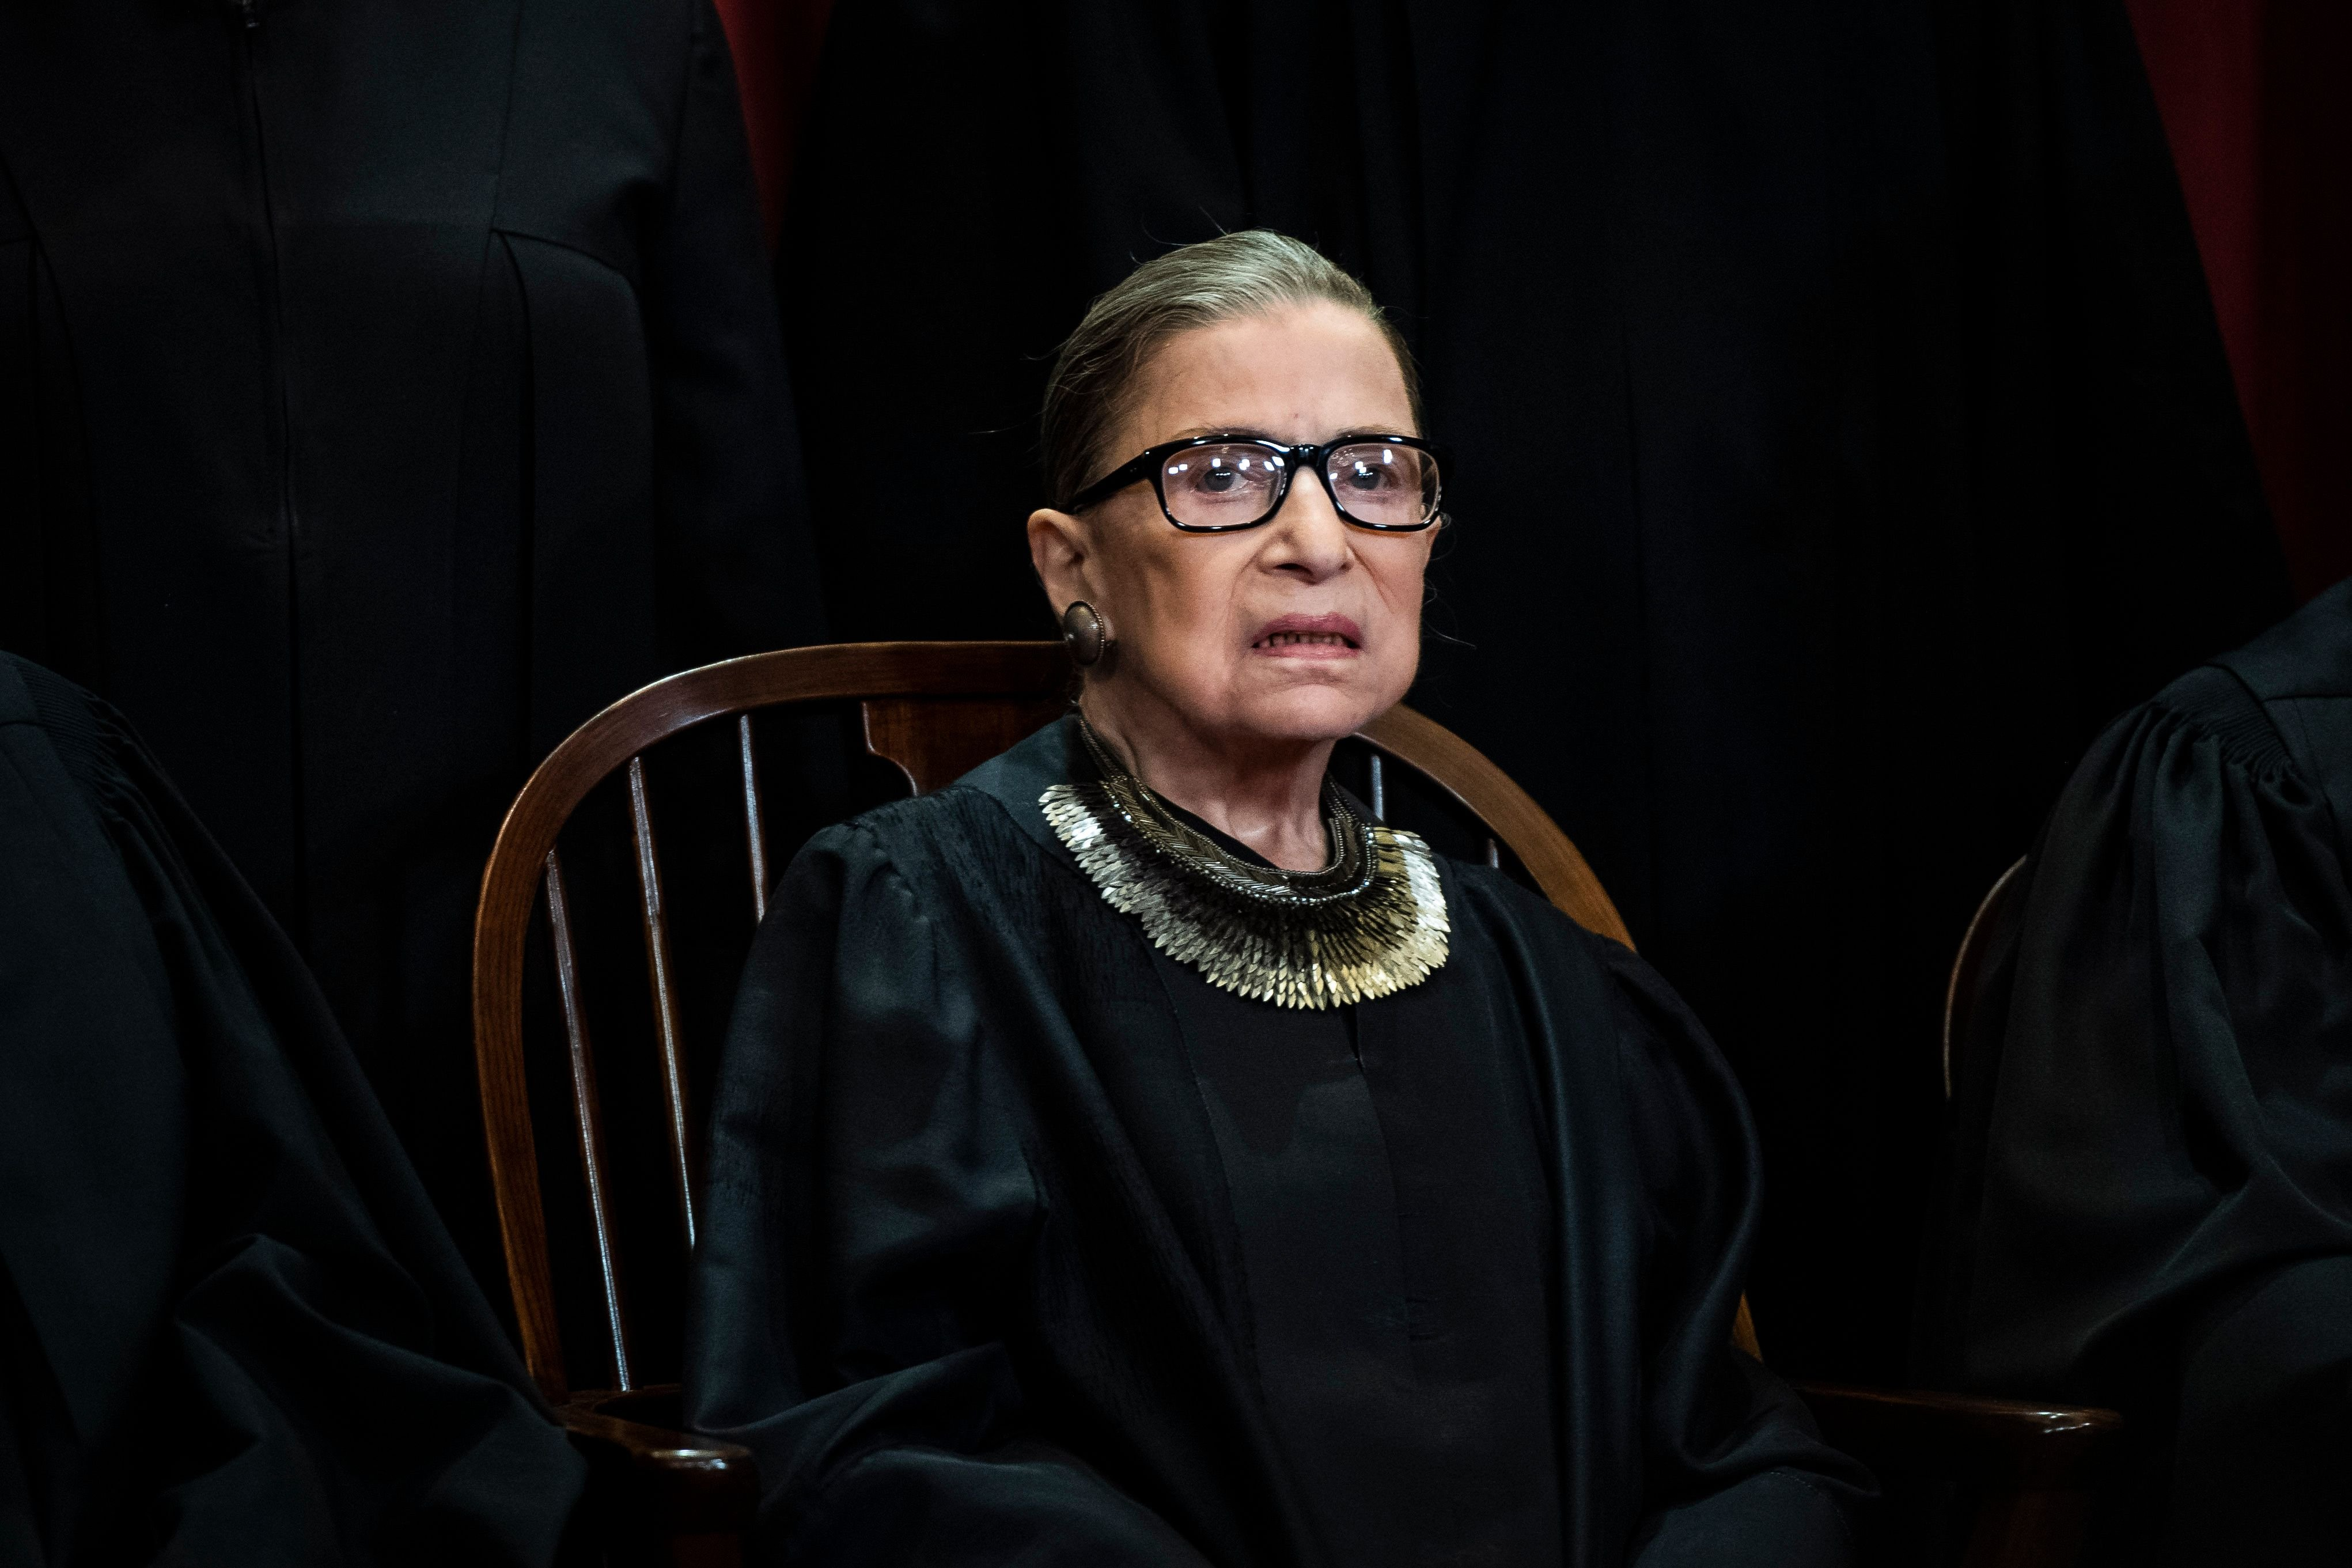 Ruth Bader Ginsburg during an official group photo at the Supreme Court on Friday, Nov. 30, 2018  | Photo: Getty Images